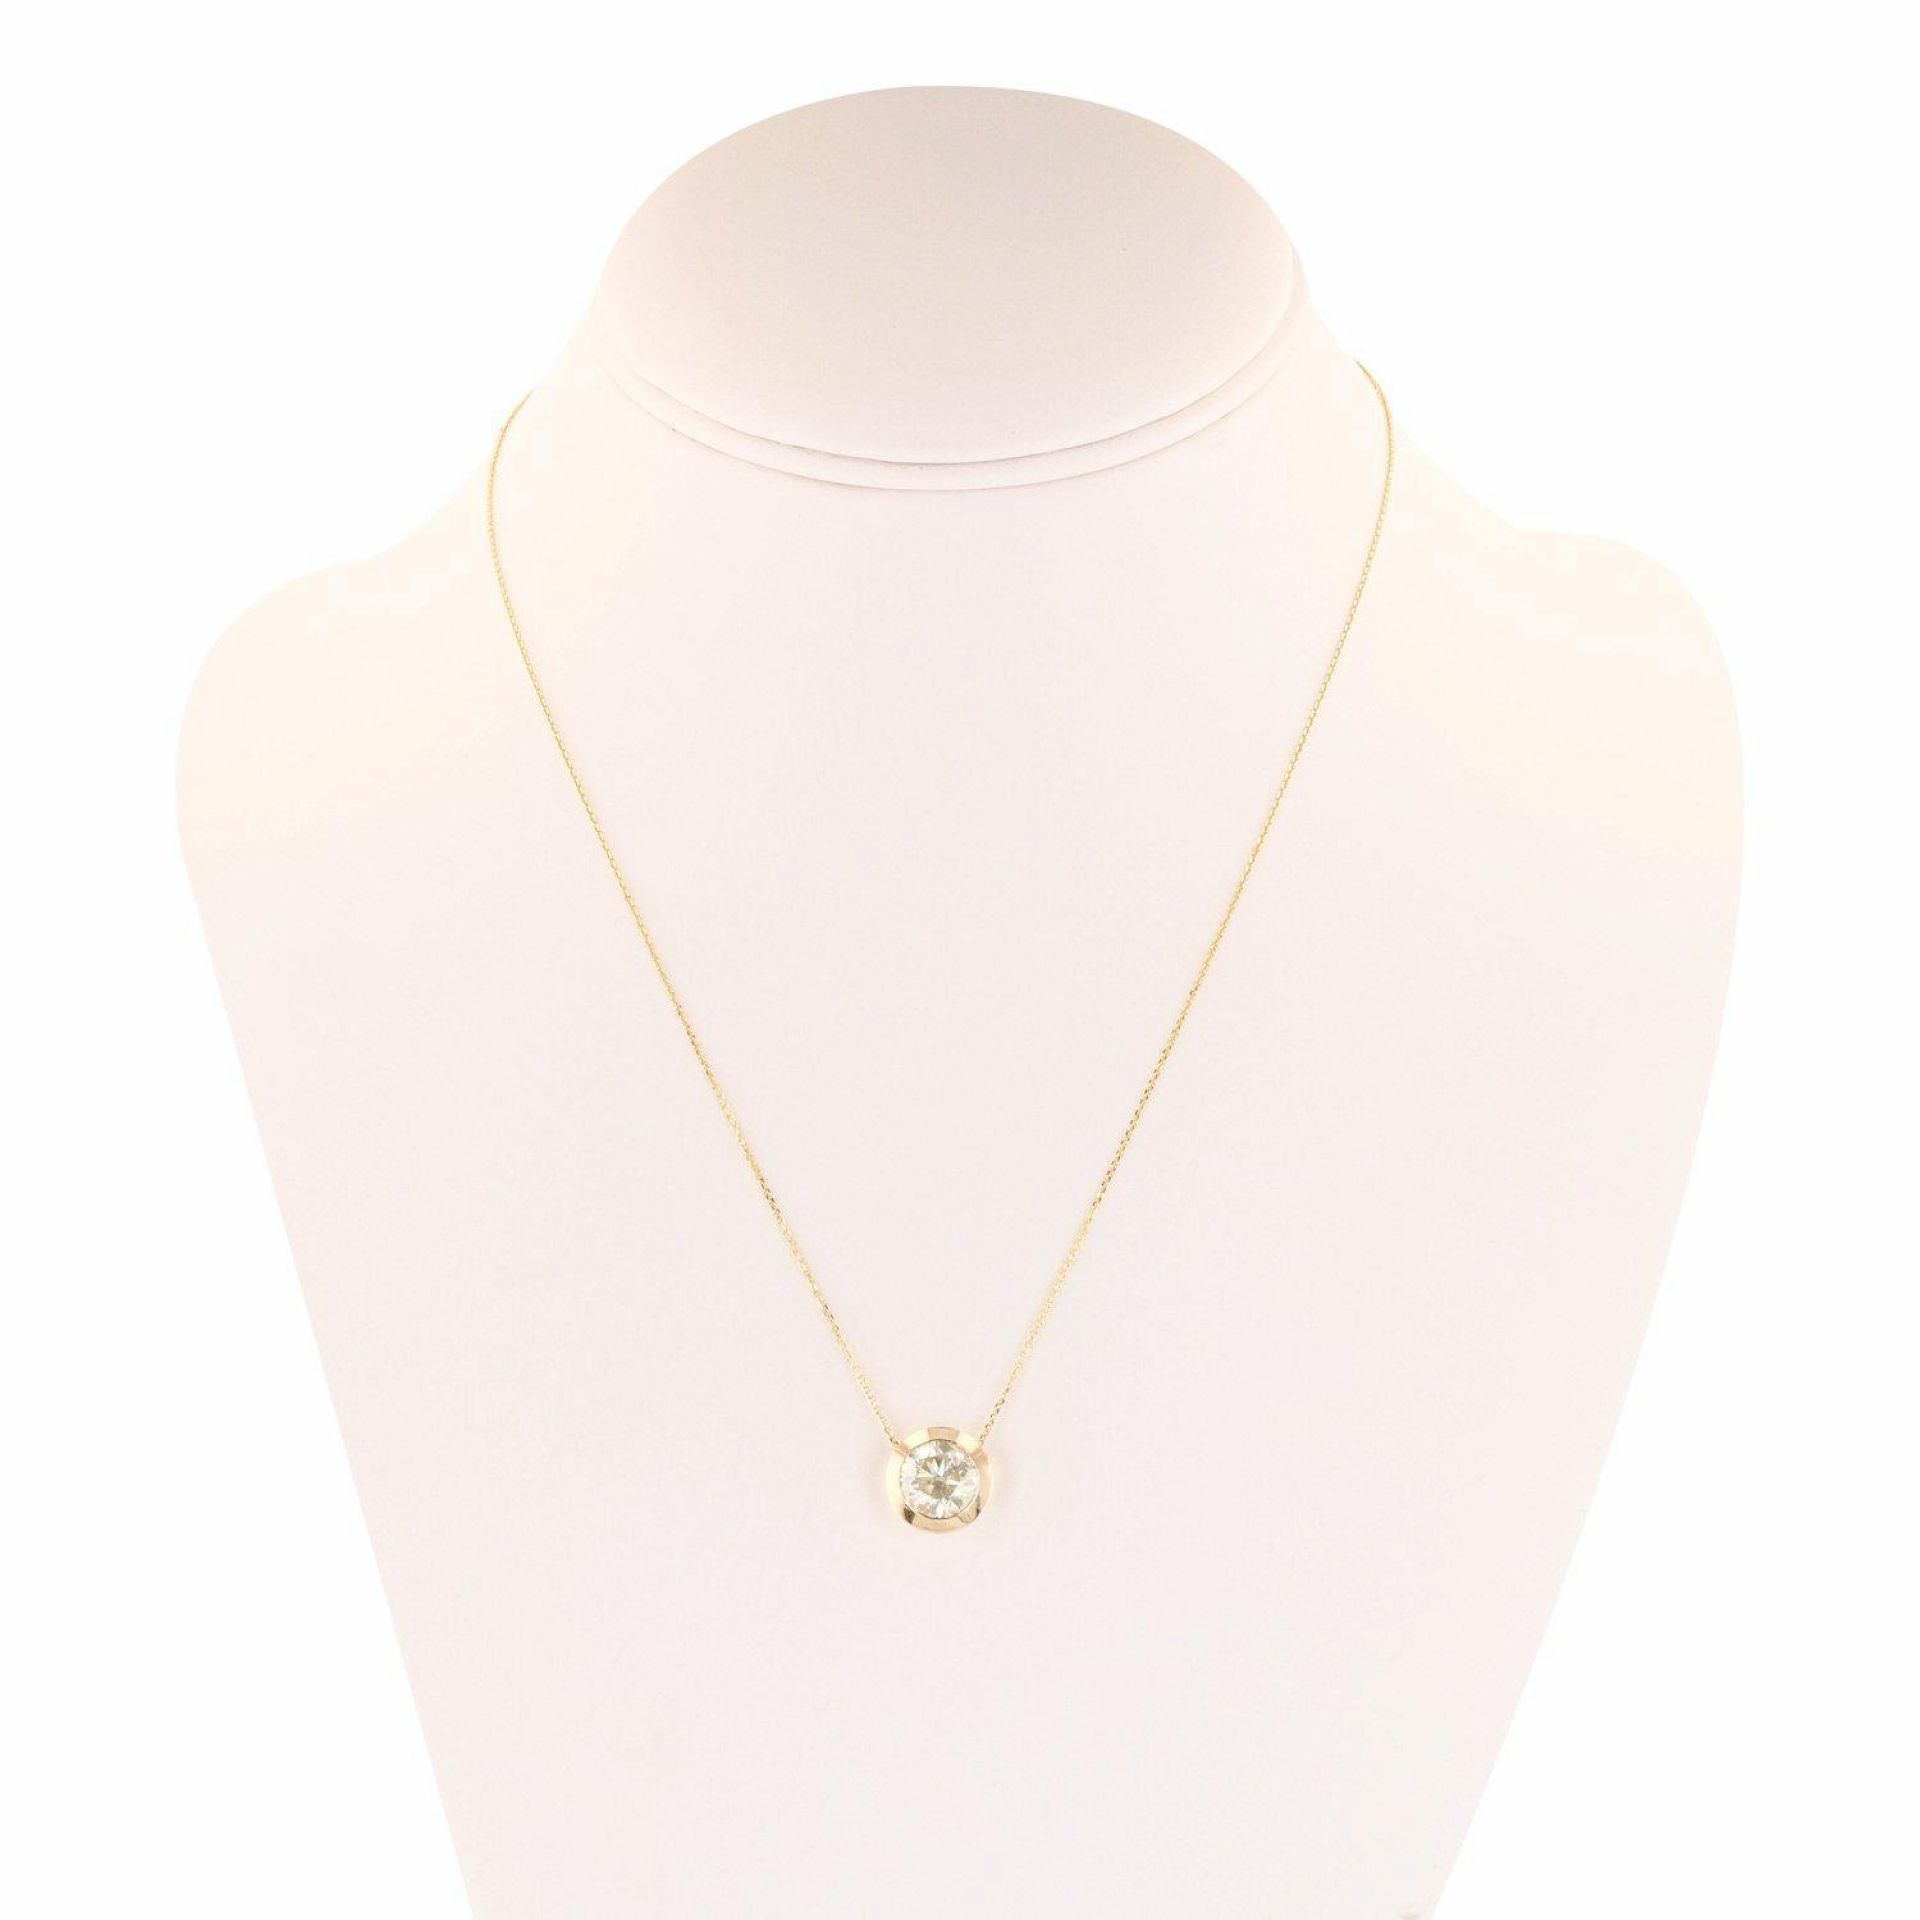 2.55ct Diamond Solitaire 14K Yellow Gold Pendant/Necklace